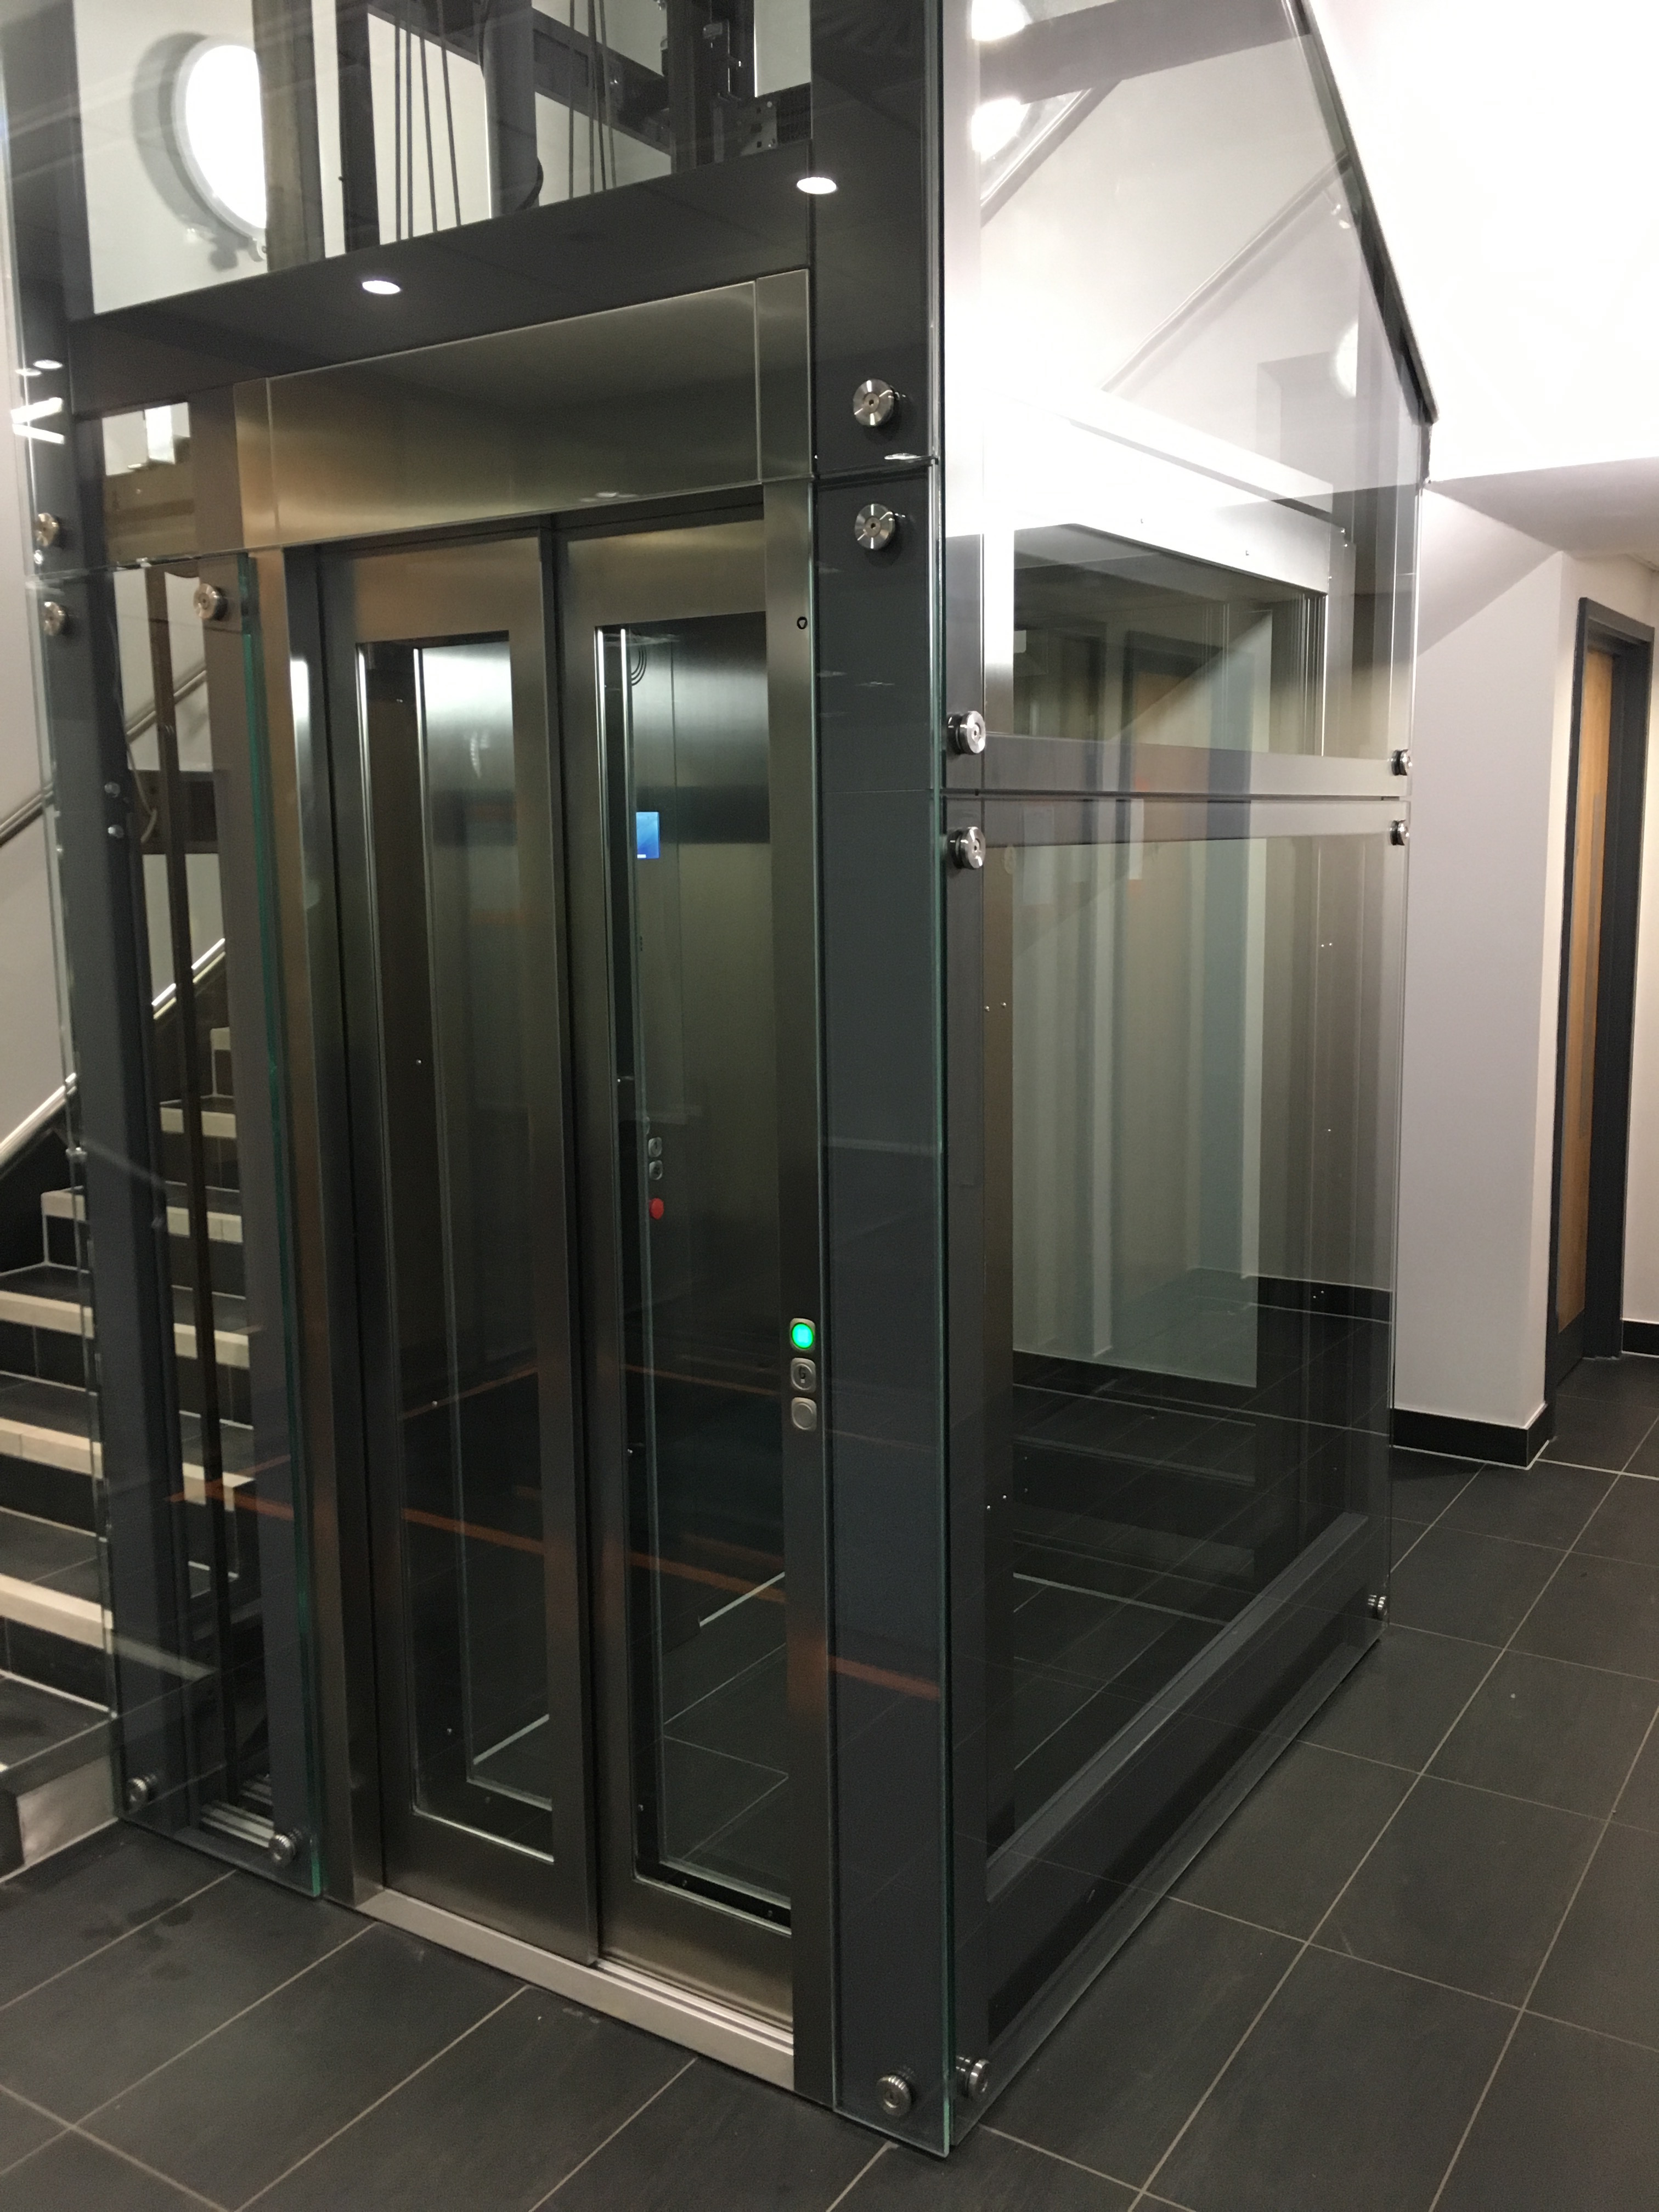 lifts for commercial buildings  lifts for commercial